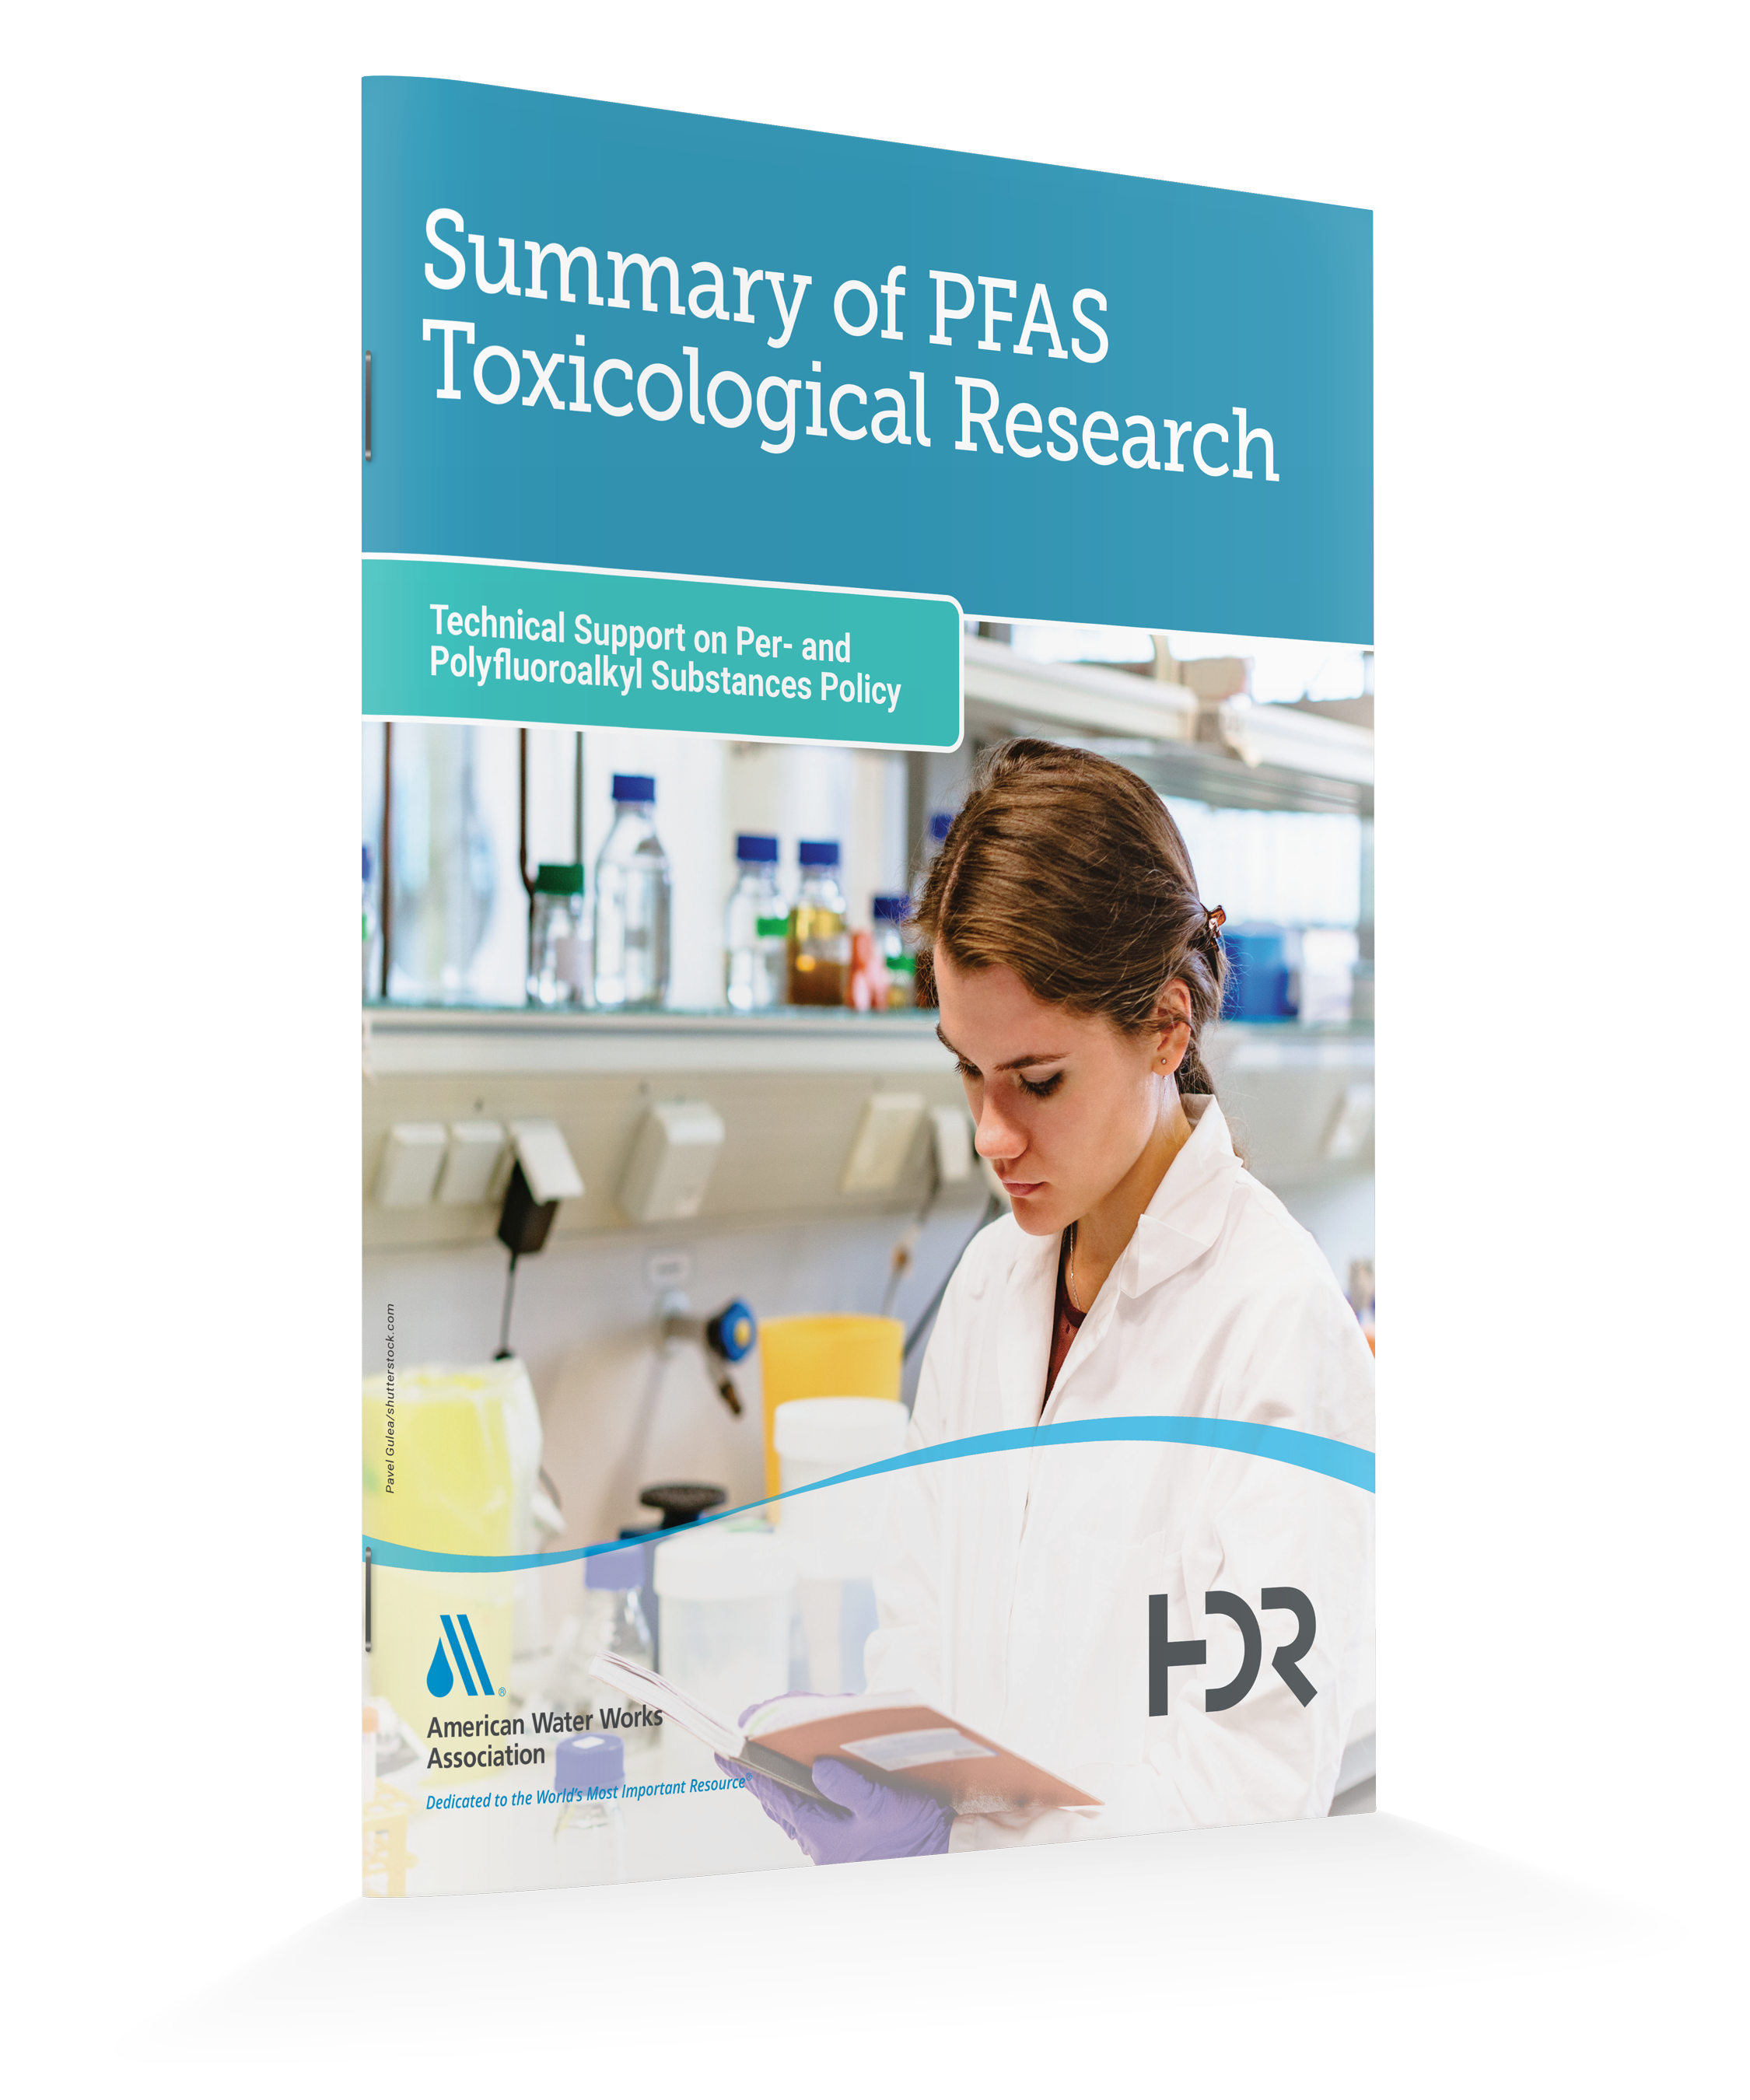 Summary-of-PFAS-Tox-Research2